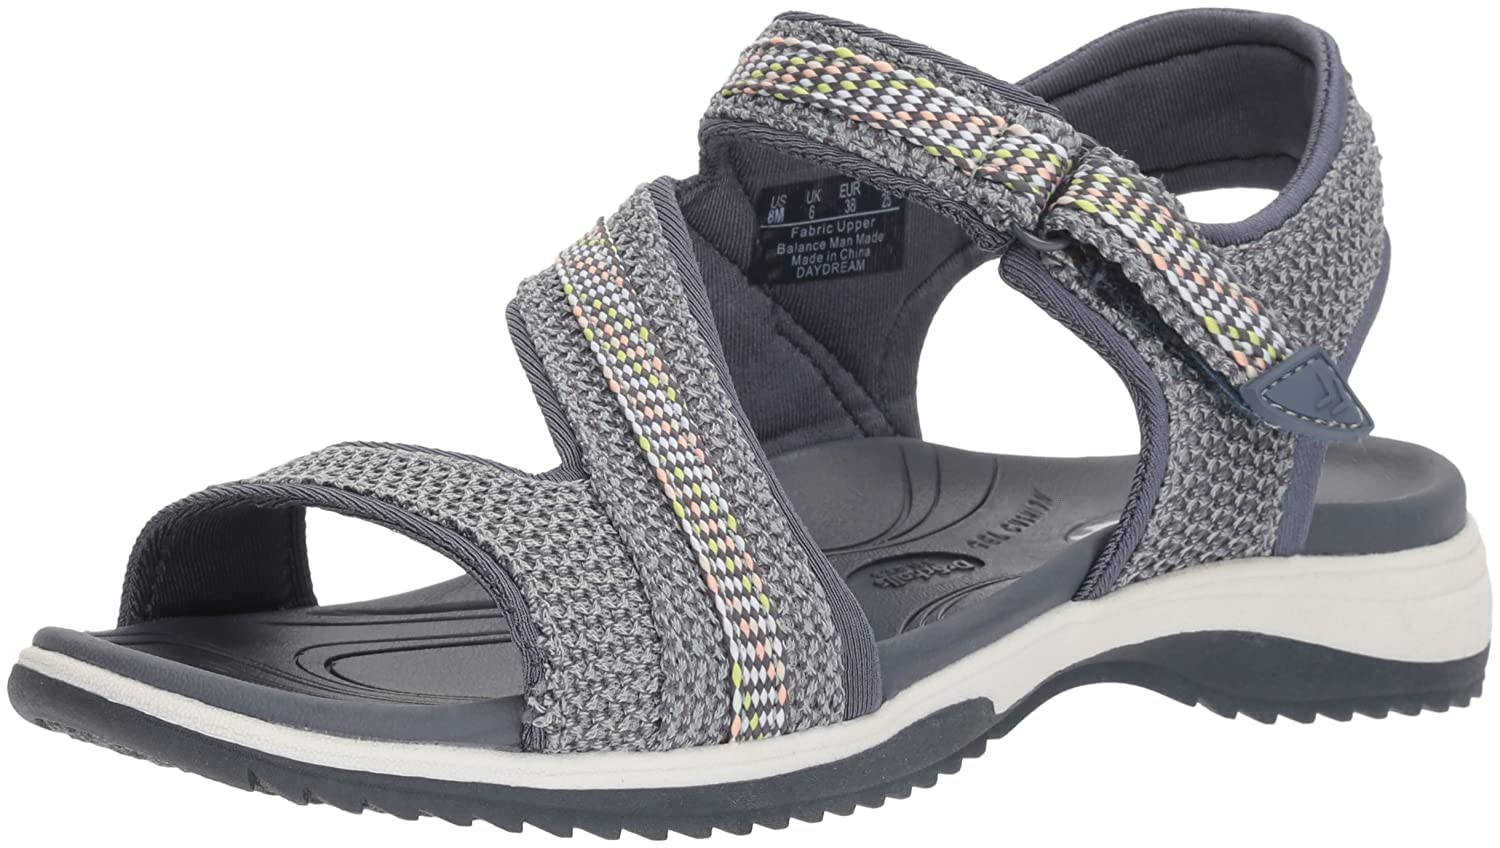 Dr. Scholl's Shoes Women's Daydream Slide Sandal B0767TR79S 11 B(M) US|Light Wash Blue Mesh